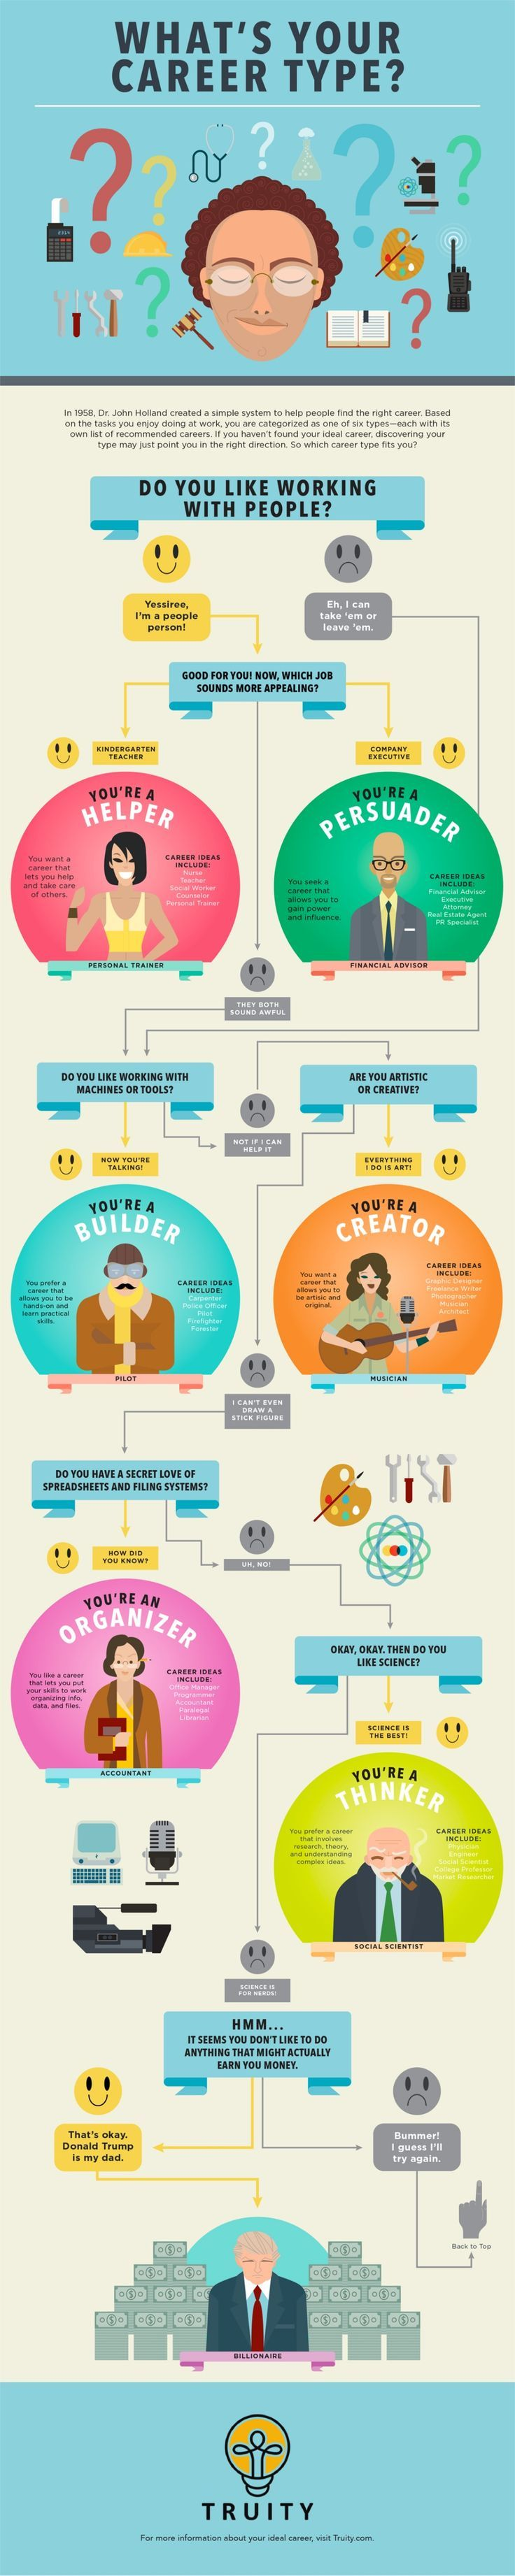 Infographic-What39s-Your-Career-Personality-Type-Holland-Code-Decision Infographic : What's Your Career Personality Type? Holland Code Decision Tree